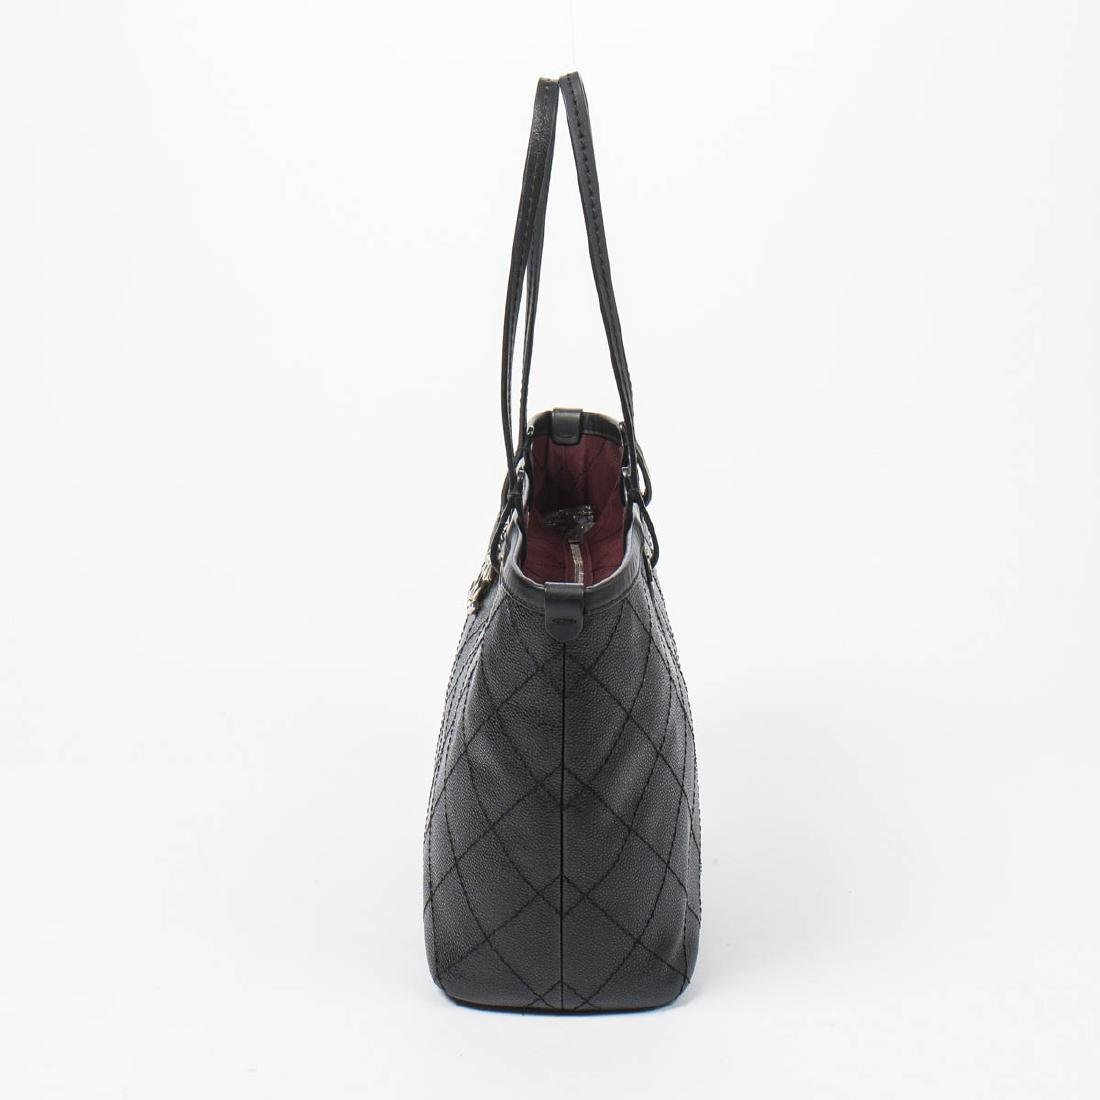 Chanel Shopping Tote MM in Black Quilted Caviar Leather - 3